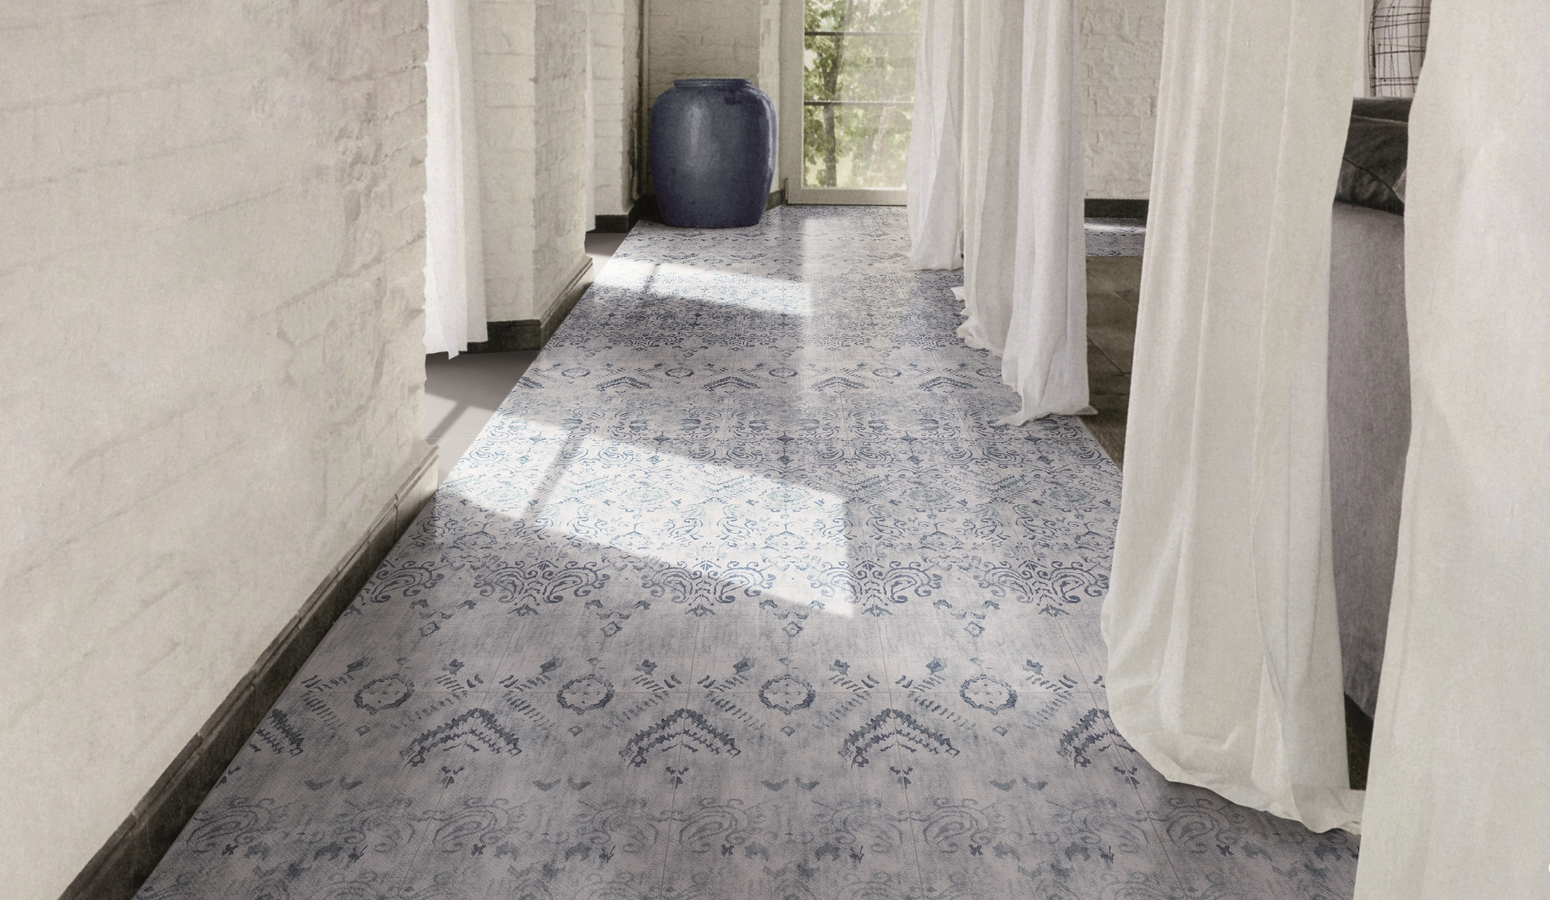 Tapestry New Tile Trend | KitchAnn Style